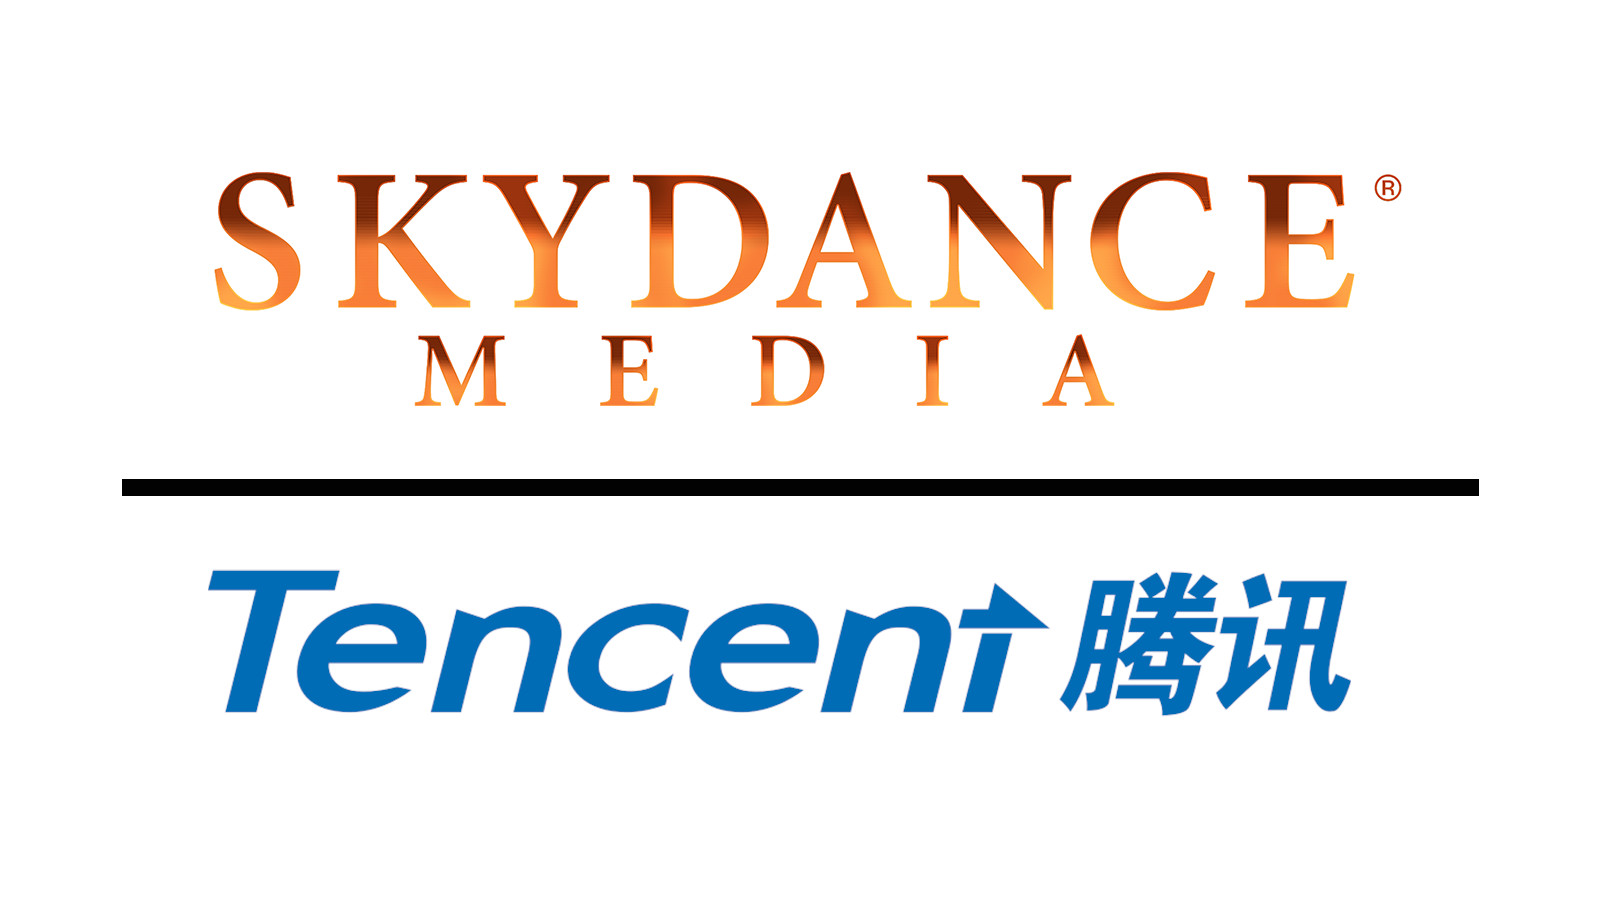 Tencent Makes Strategic Investment Into Skydance Media To Reach Broader Markets In China